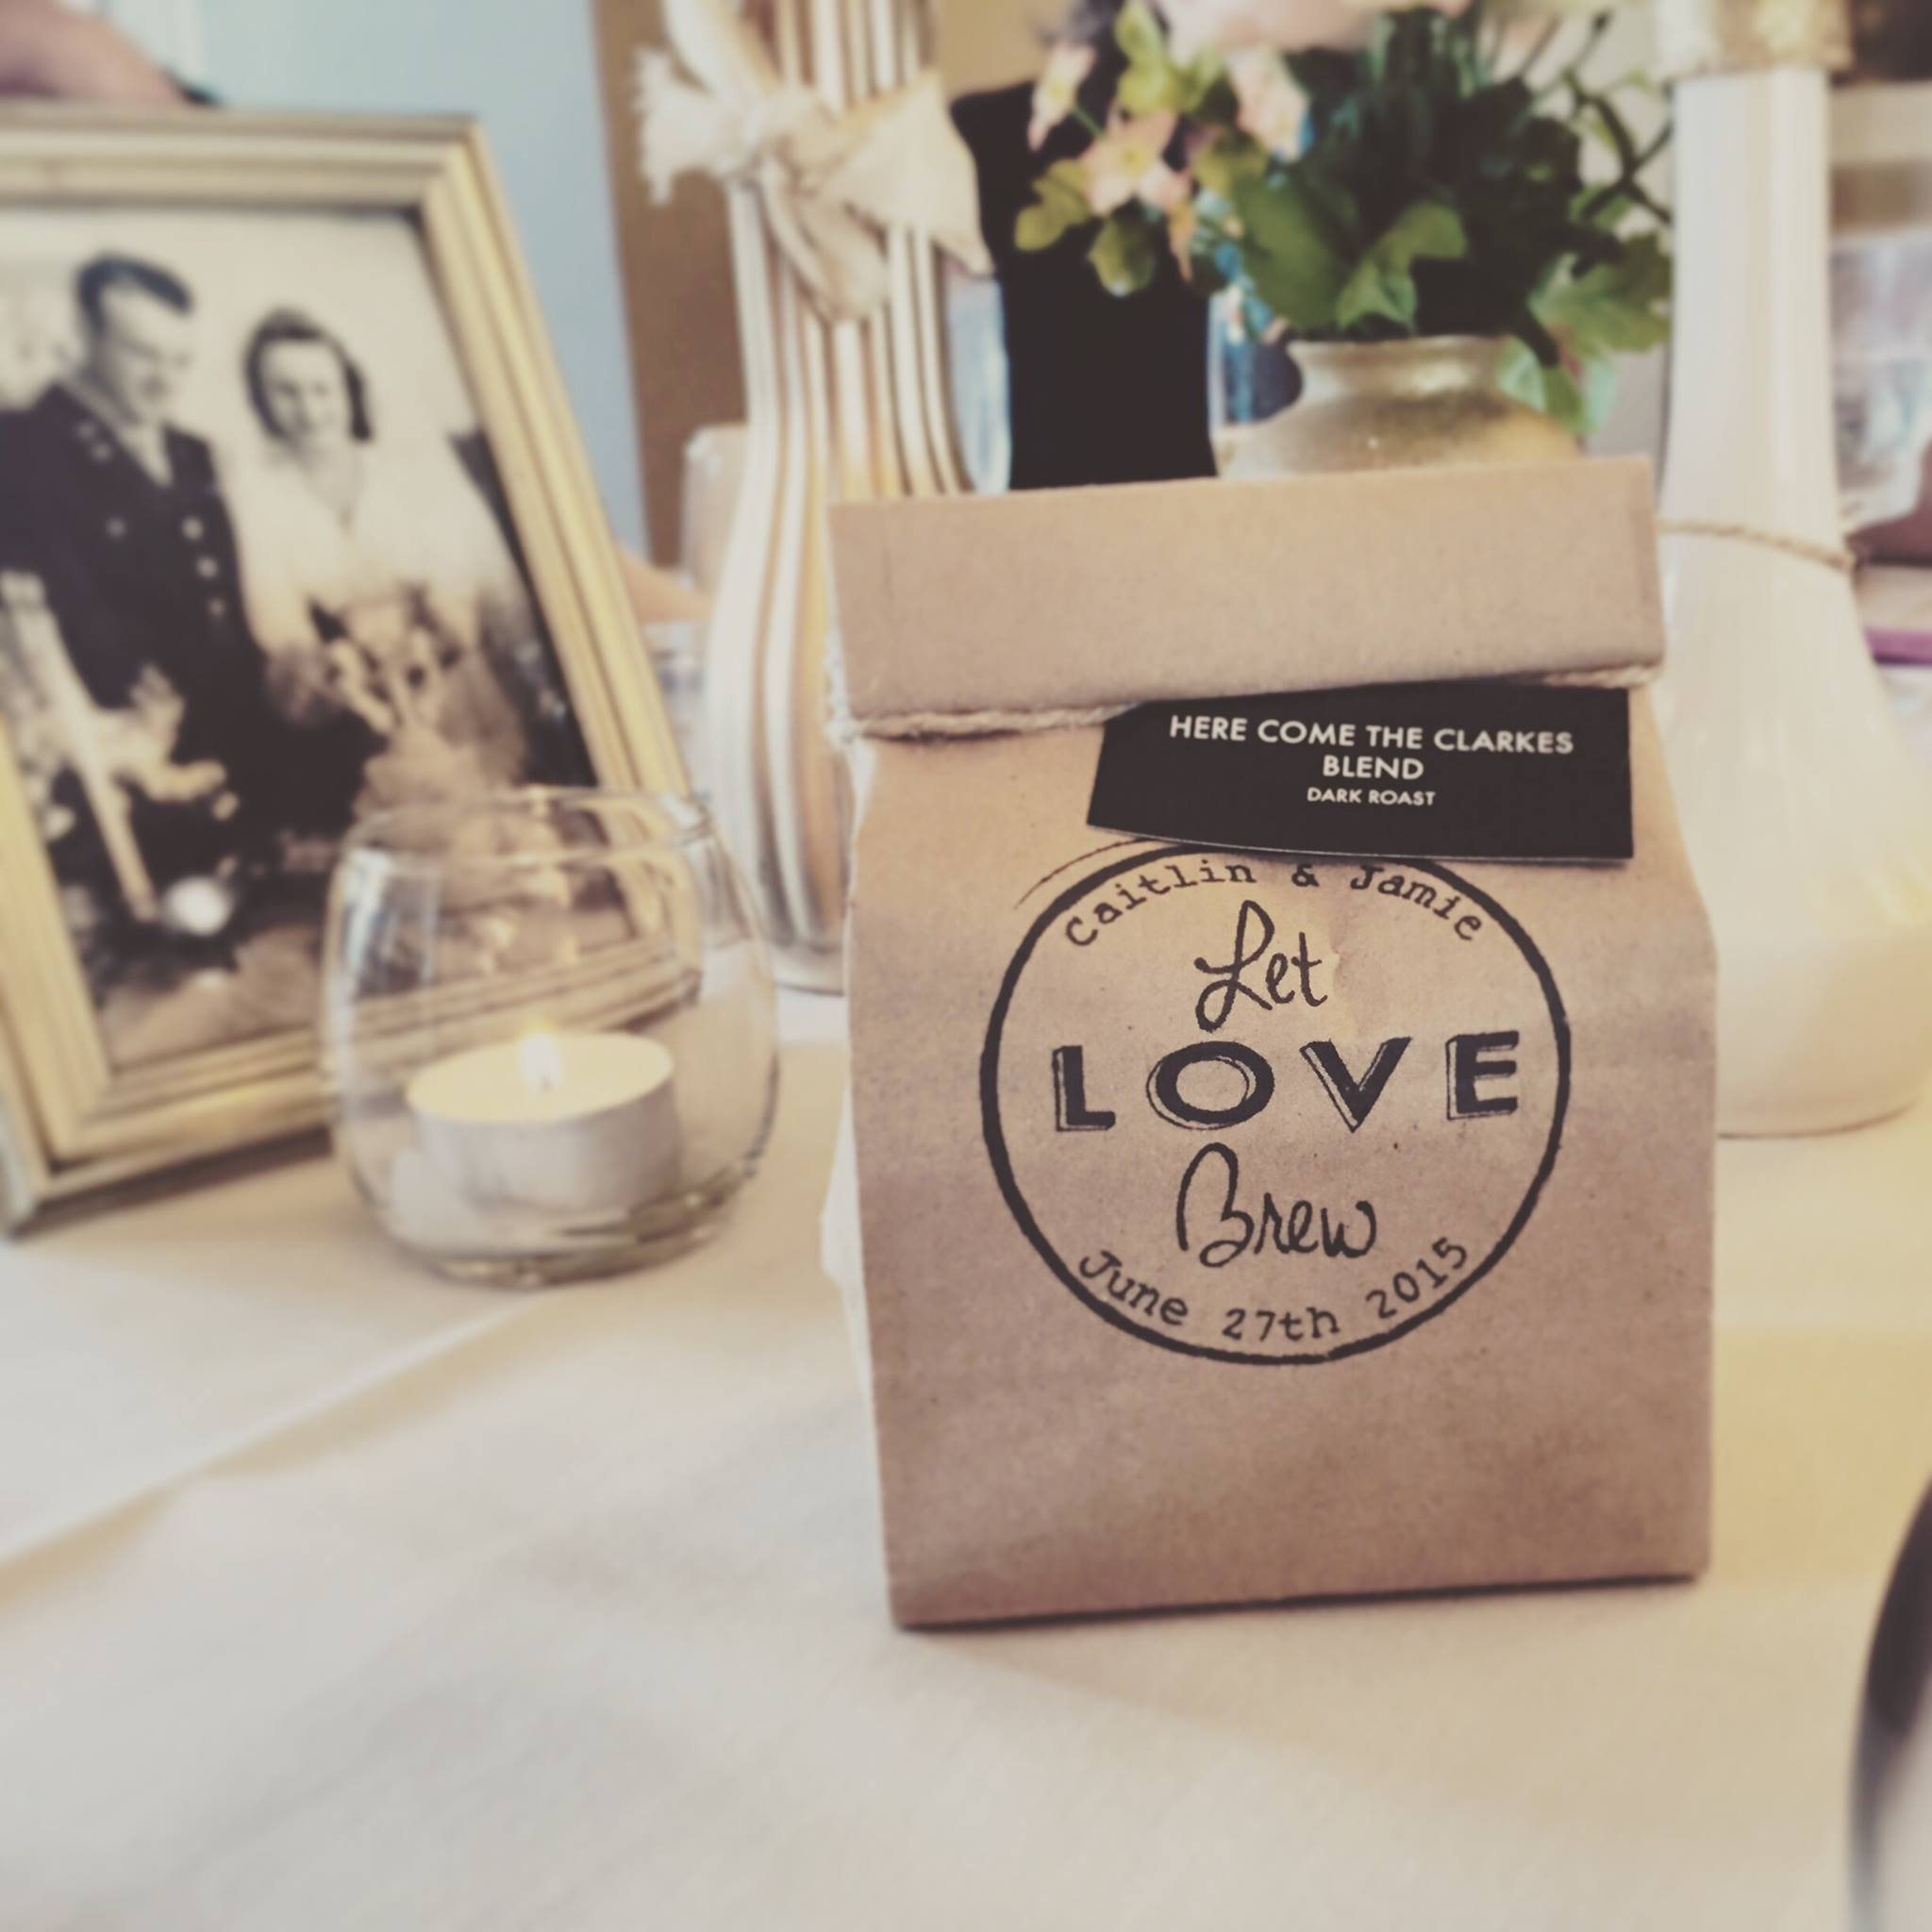 Custom Wedding Favors - Send your guests home with warm wishes and freshly roasted coffee. The customized stamp provides a unique touch to any wedding!We roast in house and source as directly with each farm as possible. Each bag is filled with 4 oz of freshly roasted coffee. The bags are all hand stamped, folded and tied with twine.